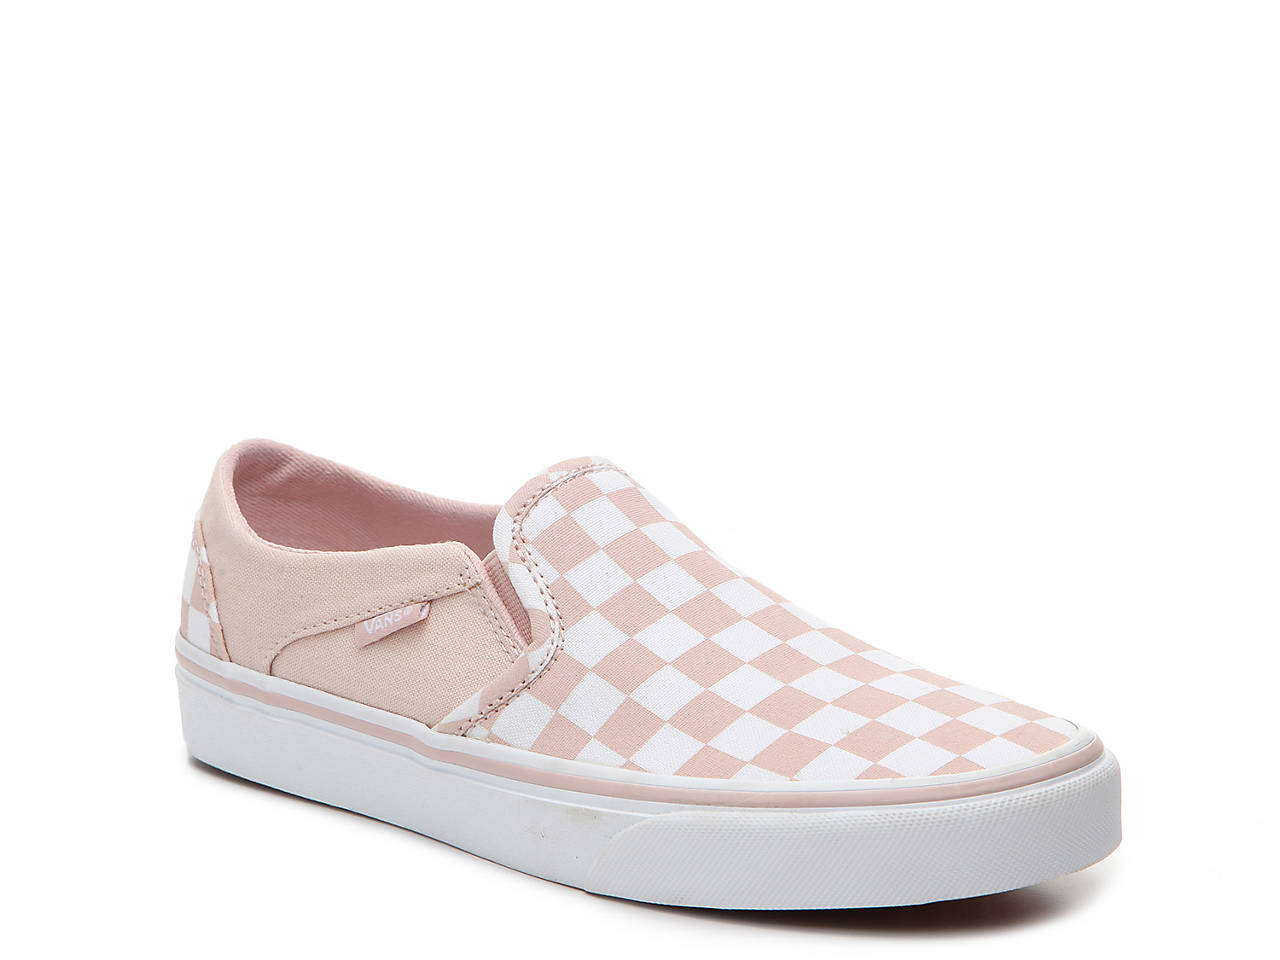 4638bf6ac23 Vans Asher Checkered Slip-On Sneaker - Women s Women s Shoes